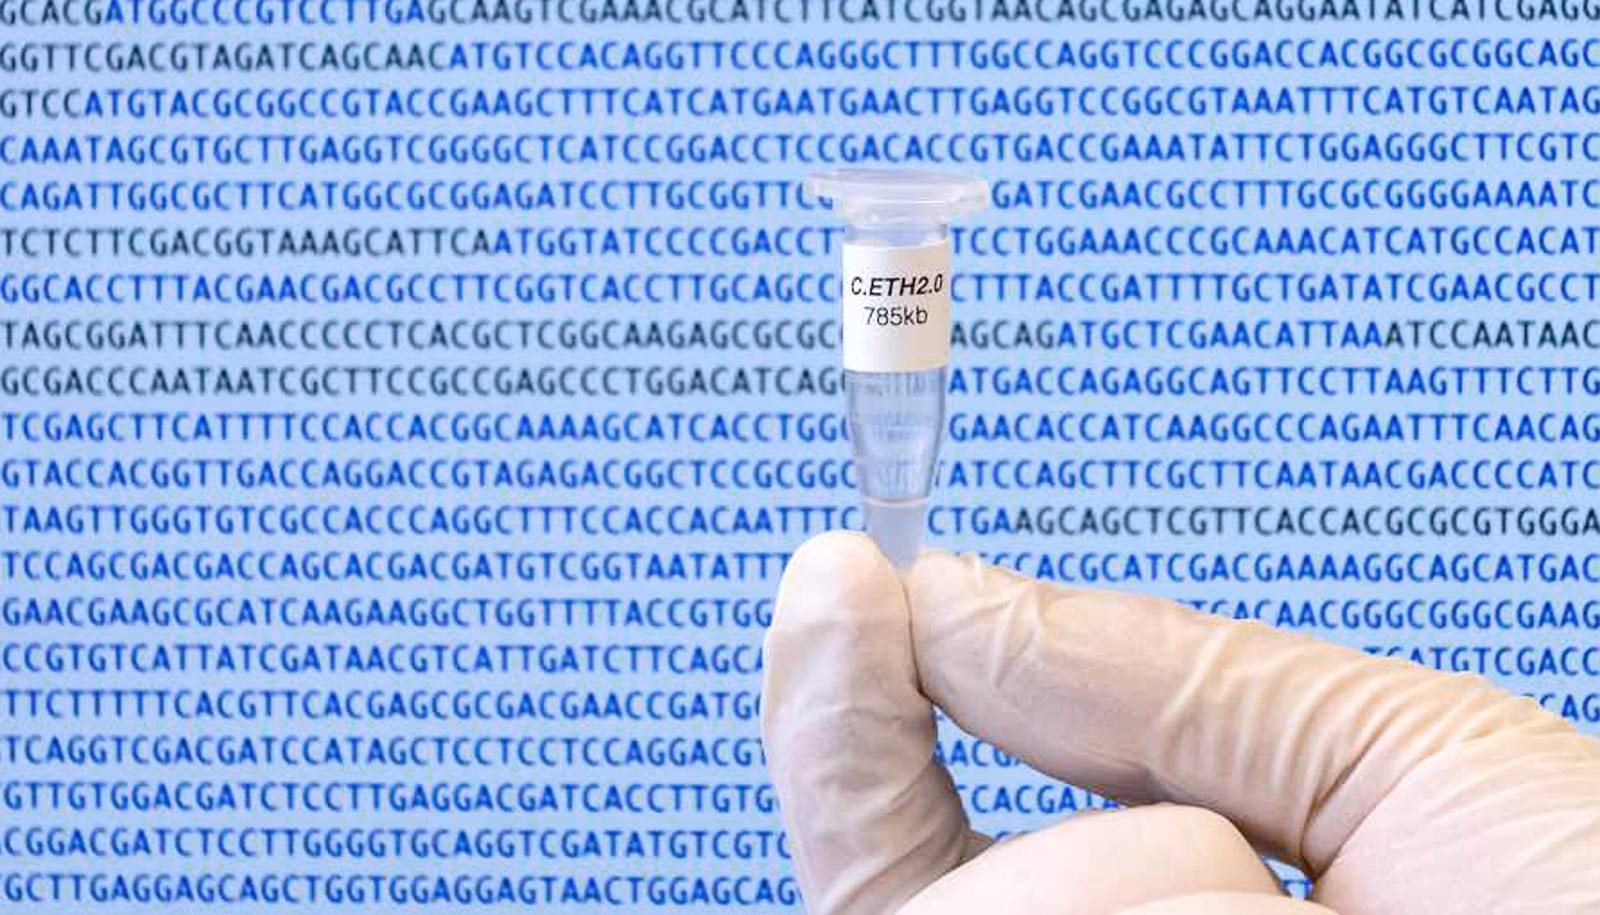 This is the first computer-generated genome